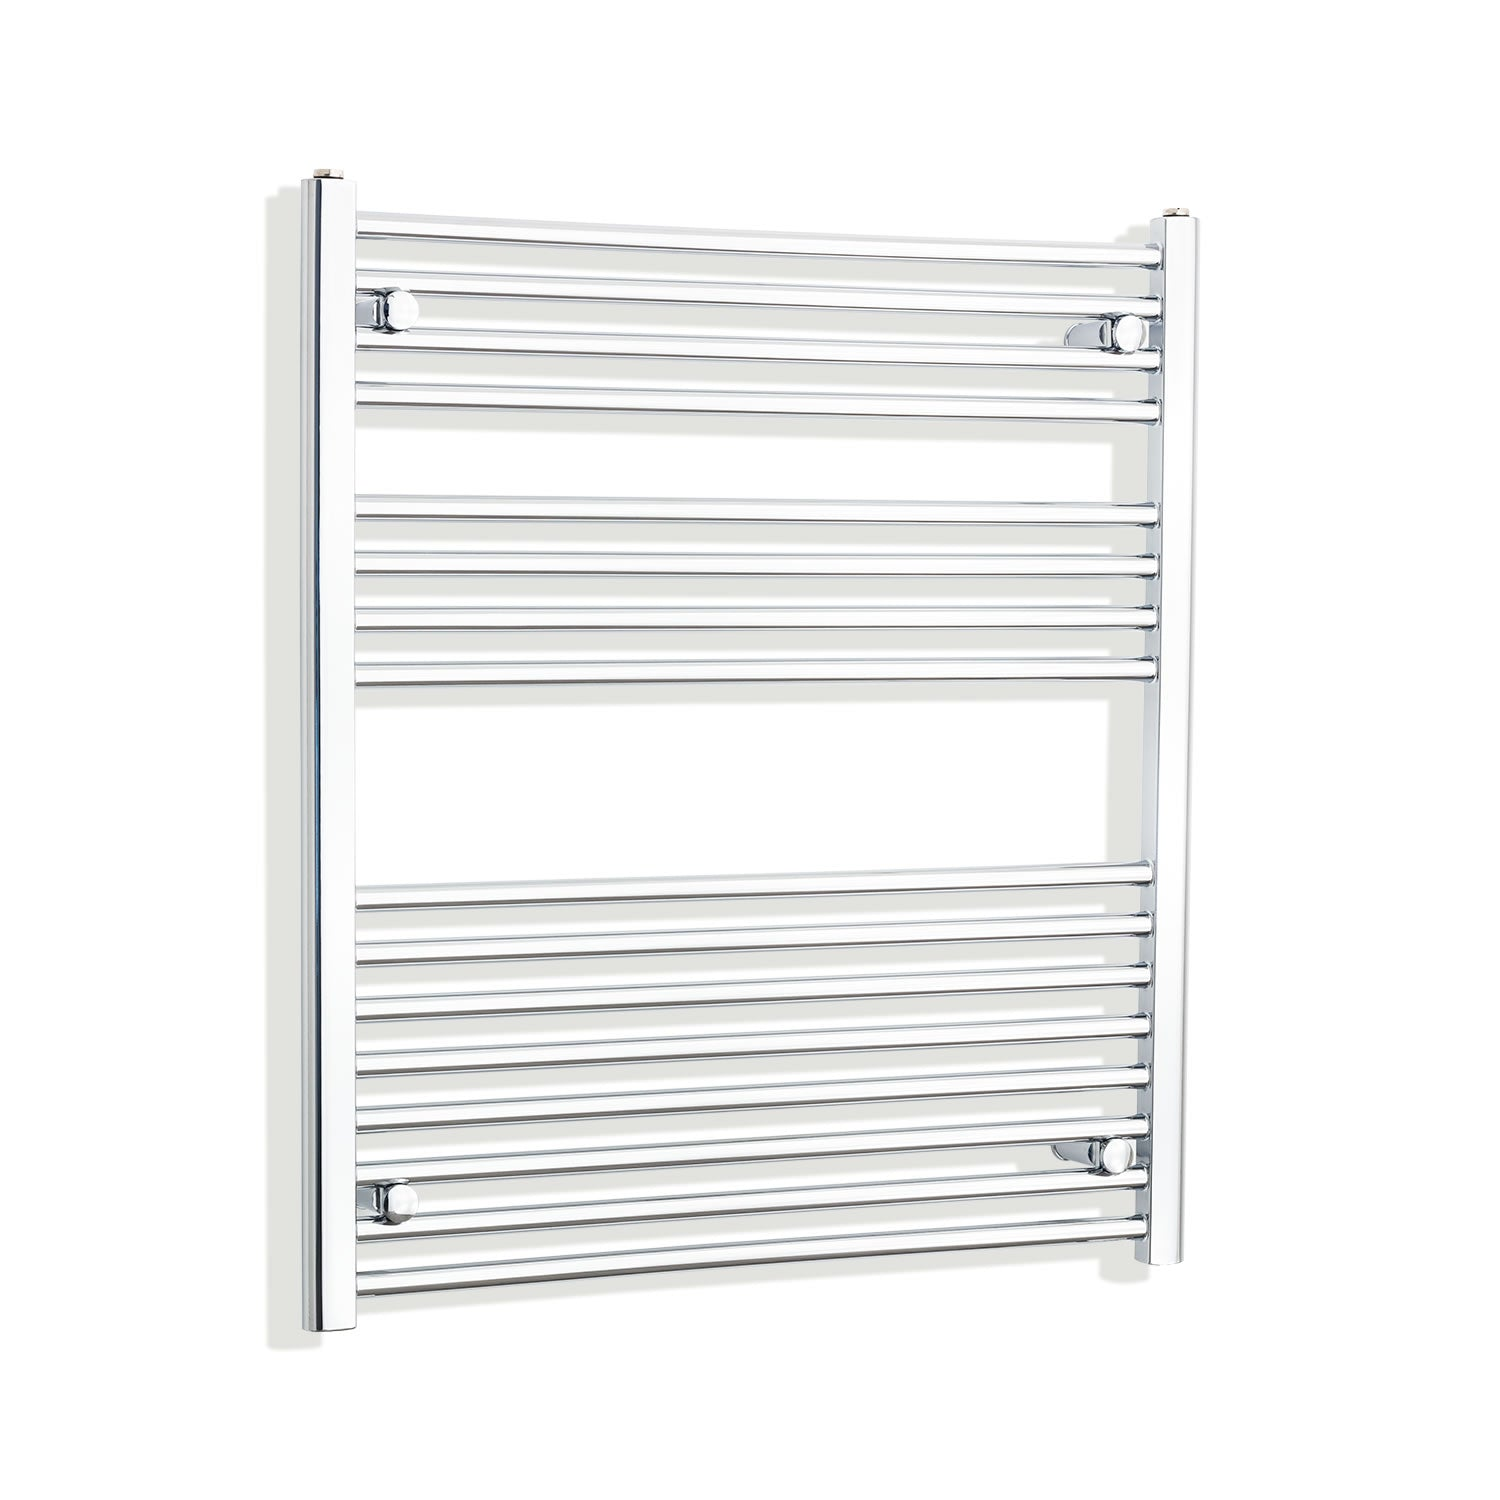 900mm Wide 900mm High Flat Chrome Heated Towel Rail Radiator HTR,Towel Rail Only